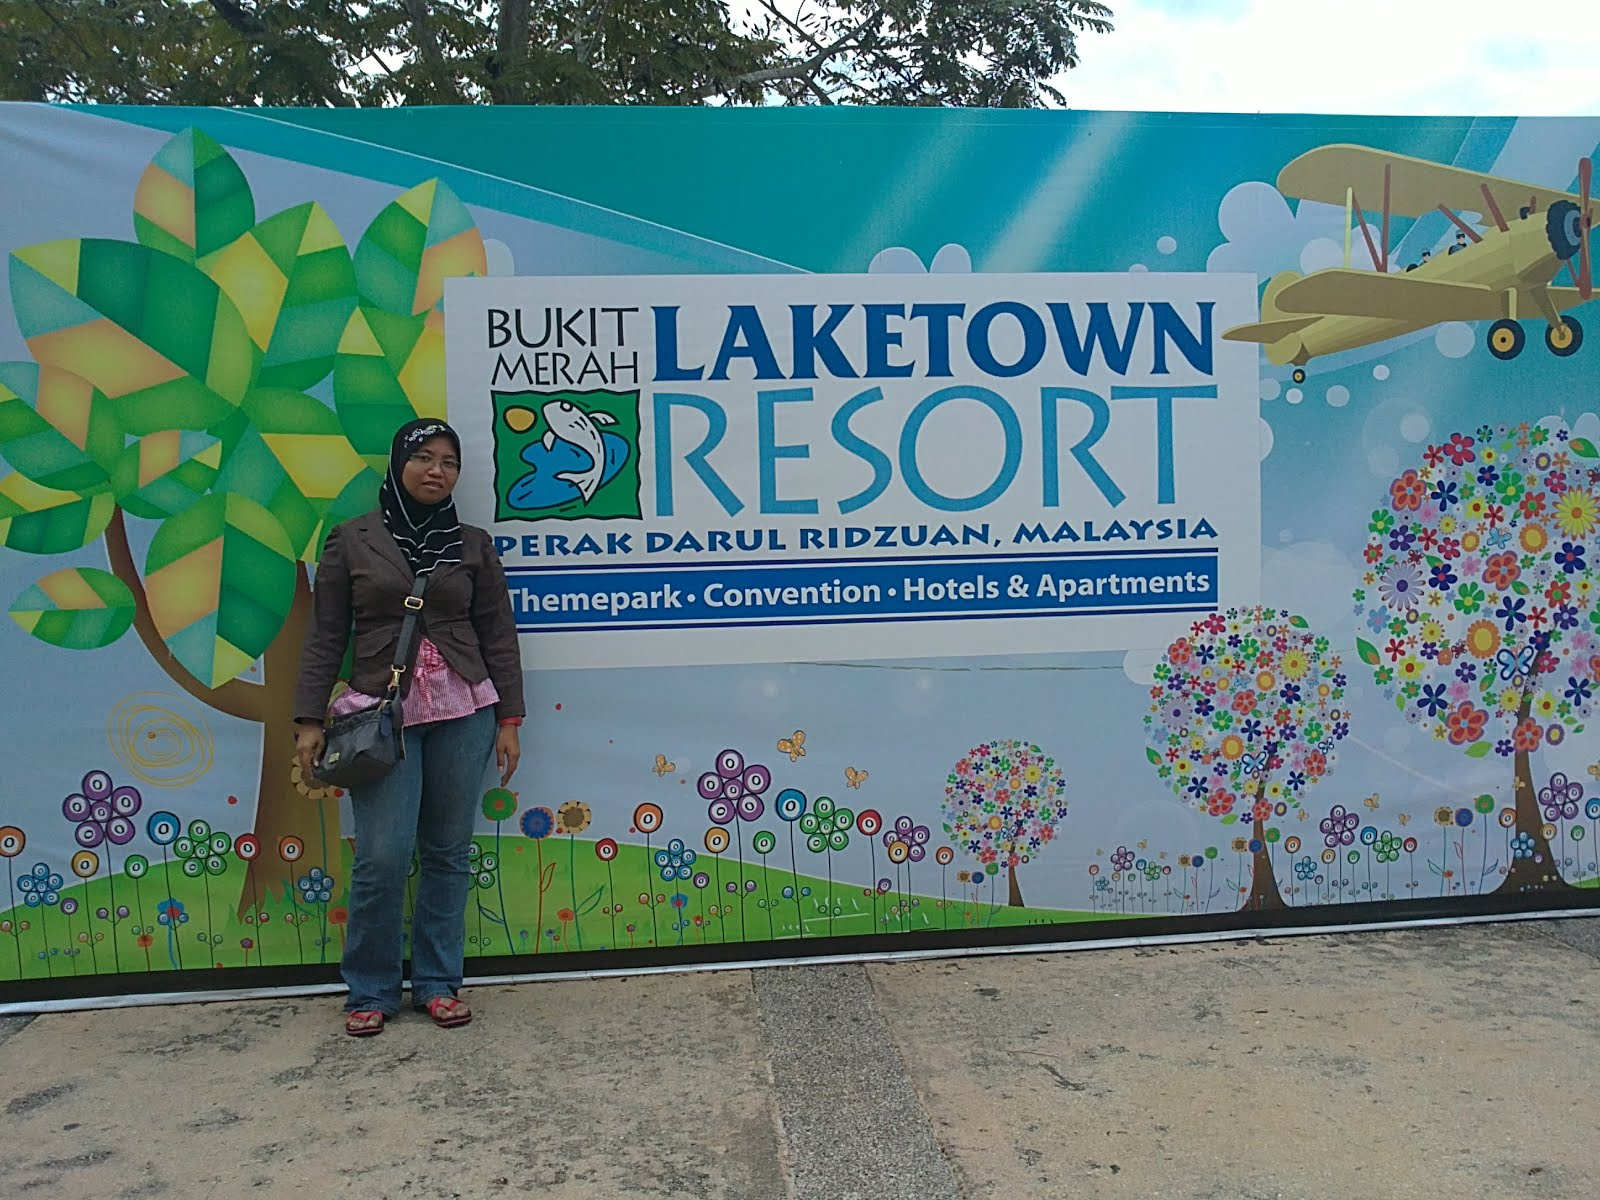 Bukit Merah Laketown Resort